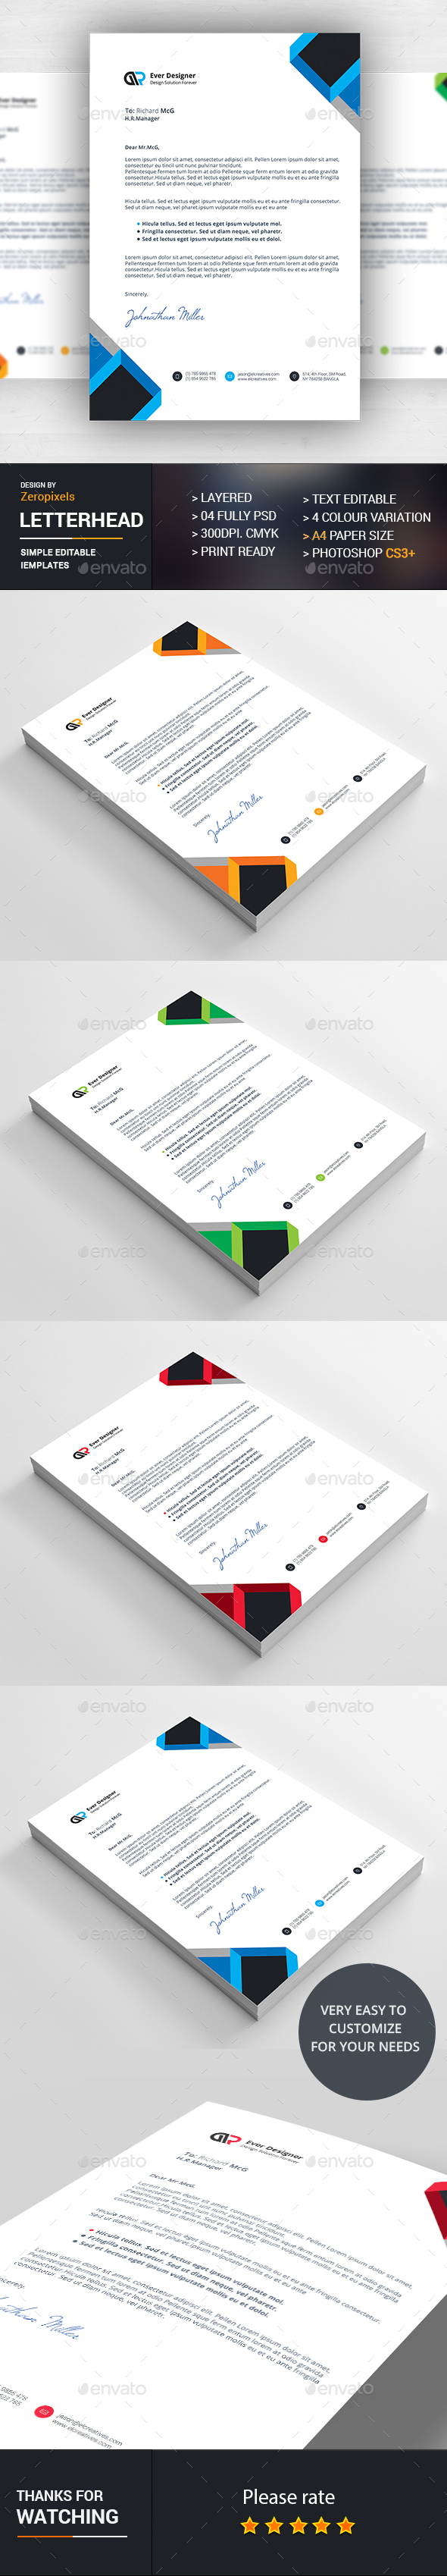 Corporate Business Letterhead Design Template  Stationery Print